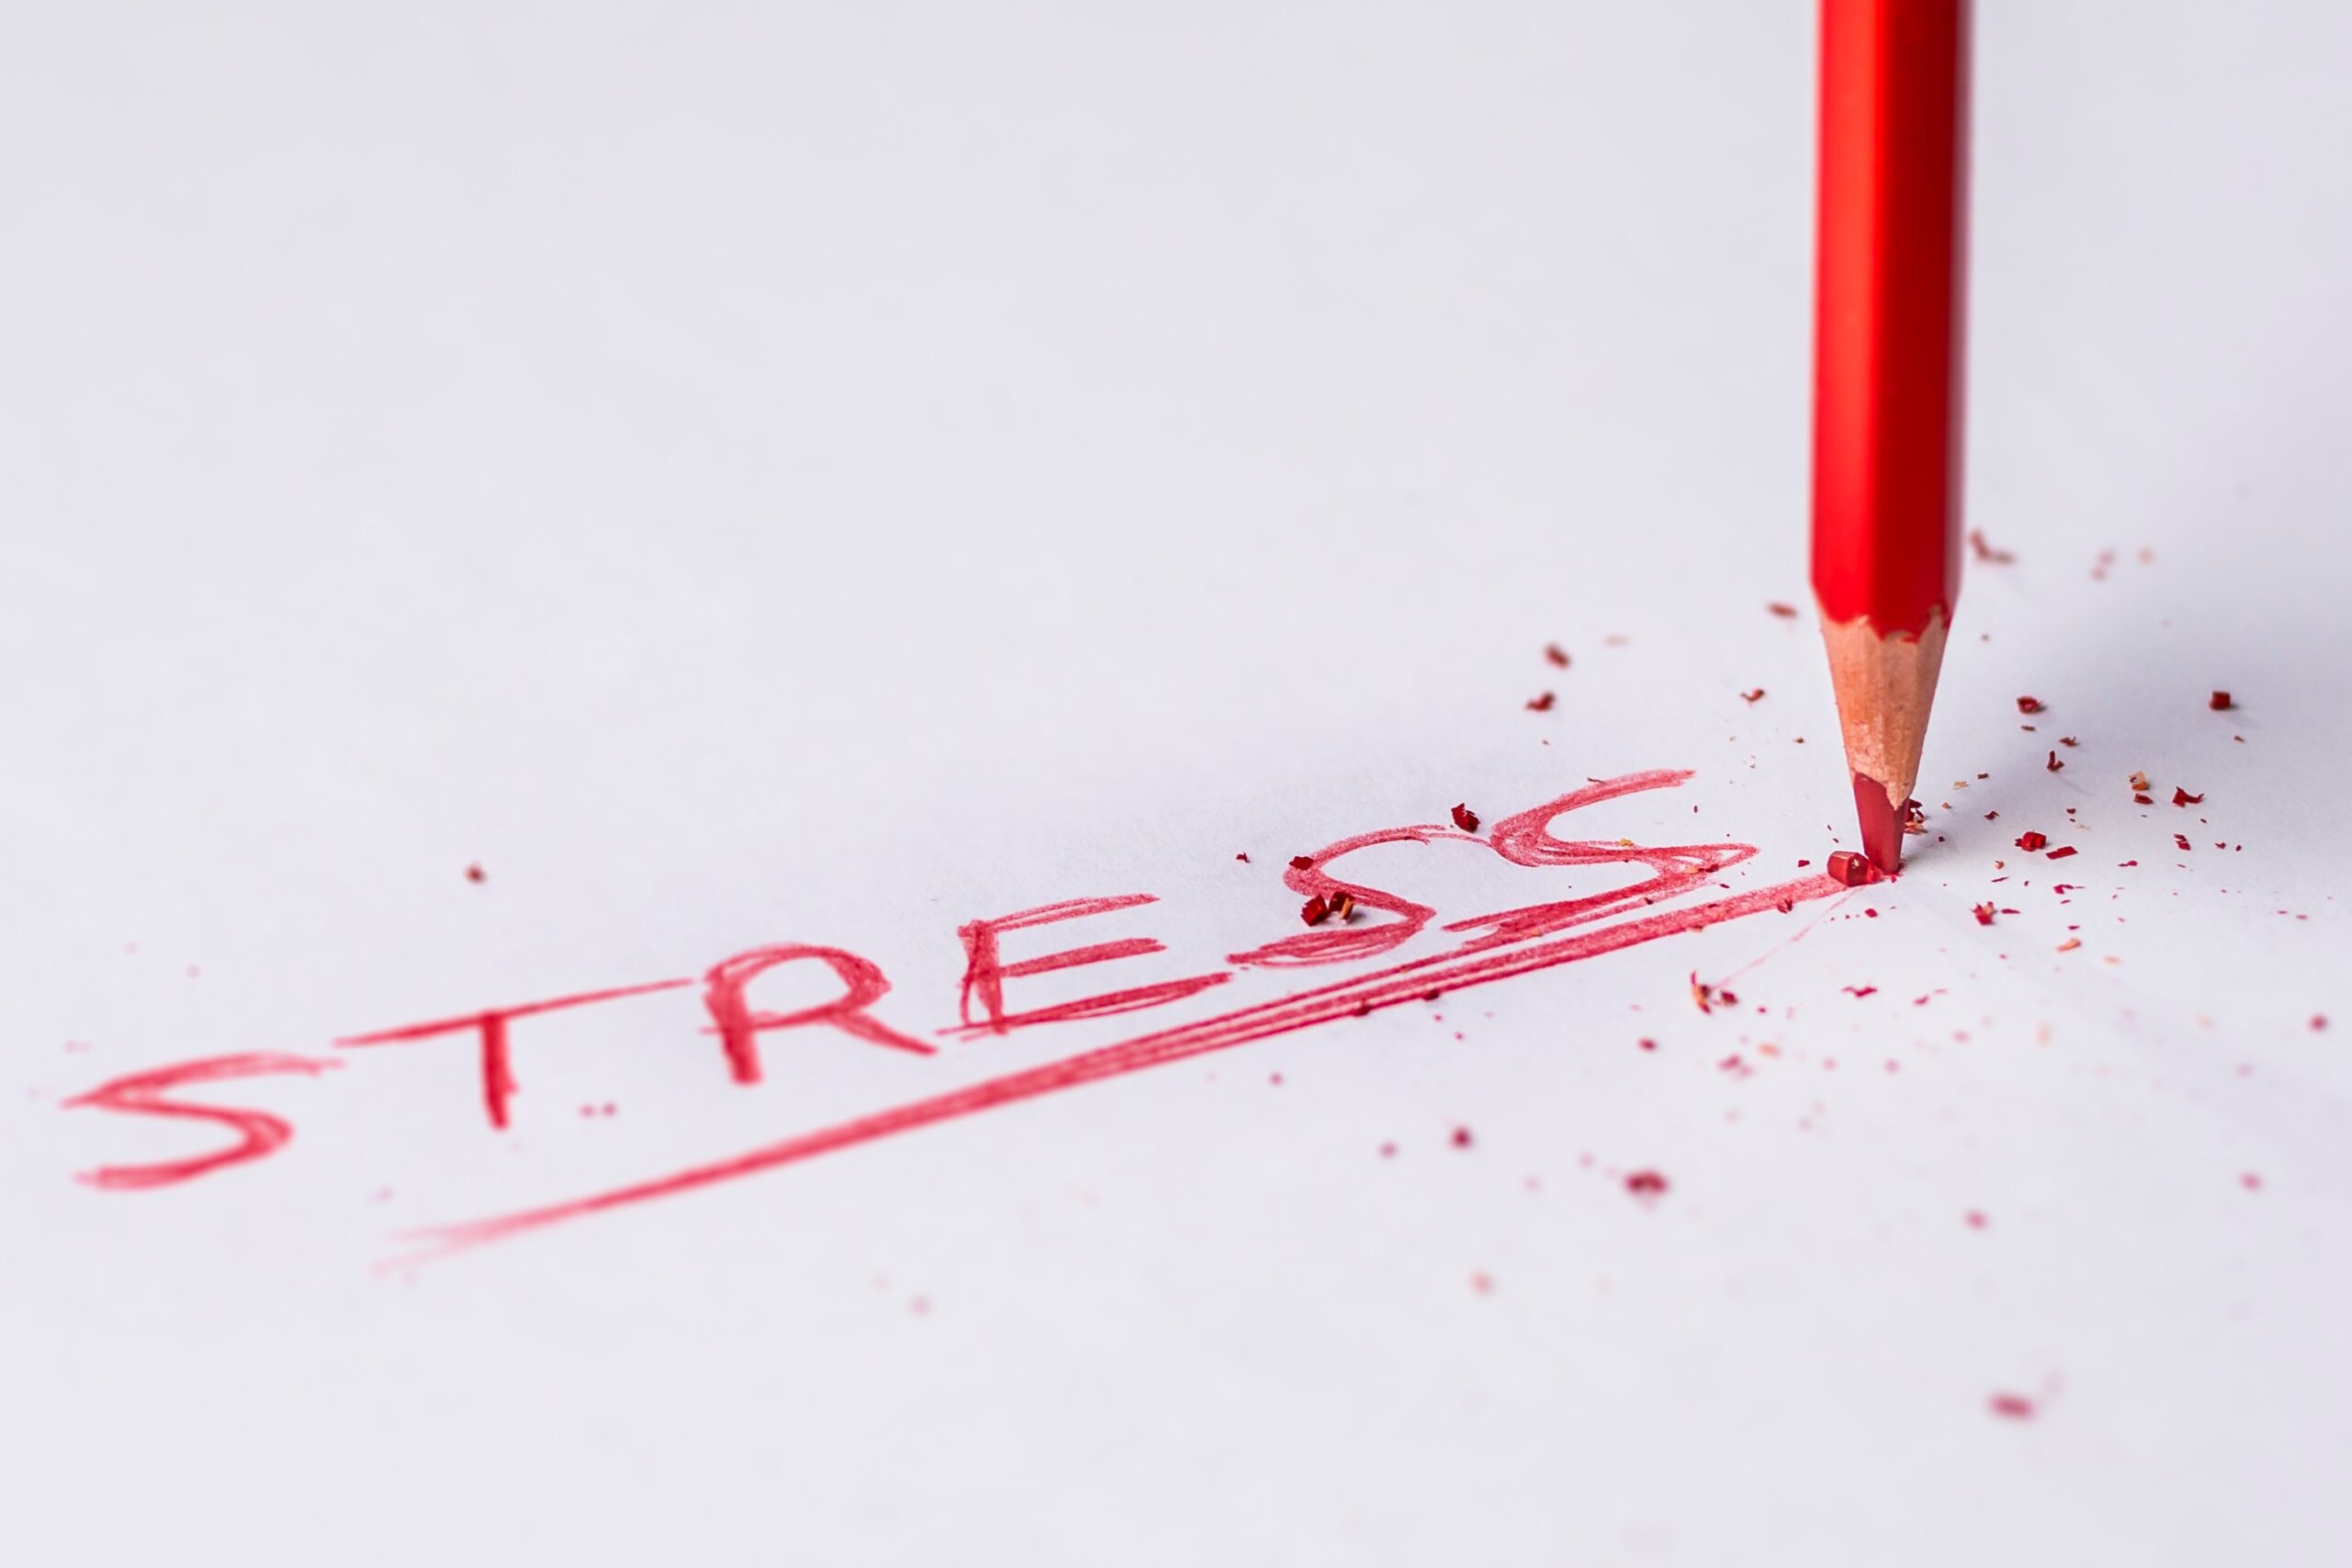 the word stress written out in a red colored pencil, with pressure being applied to the pencil causing the tip to break